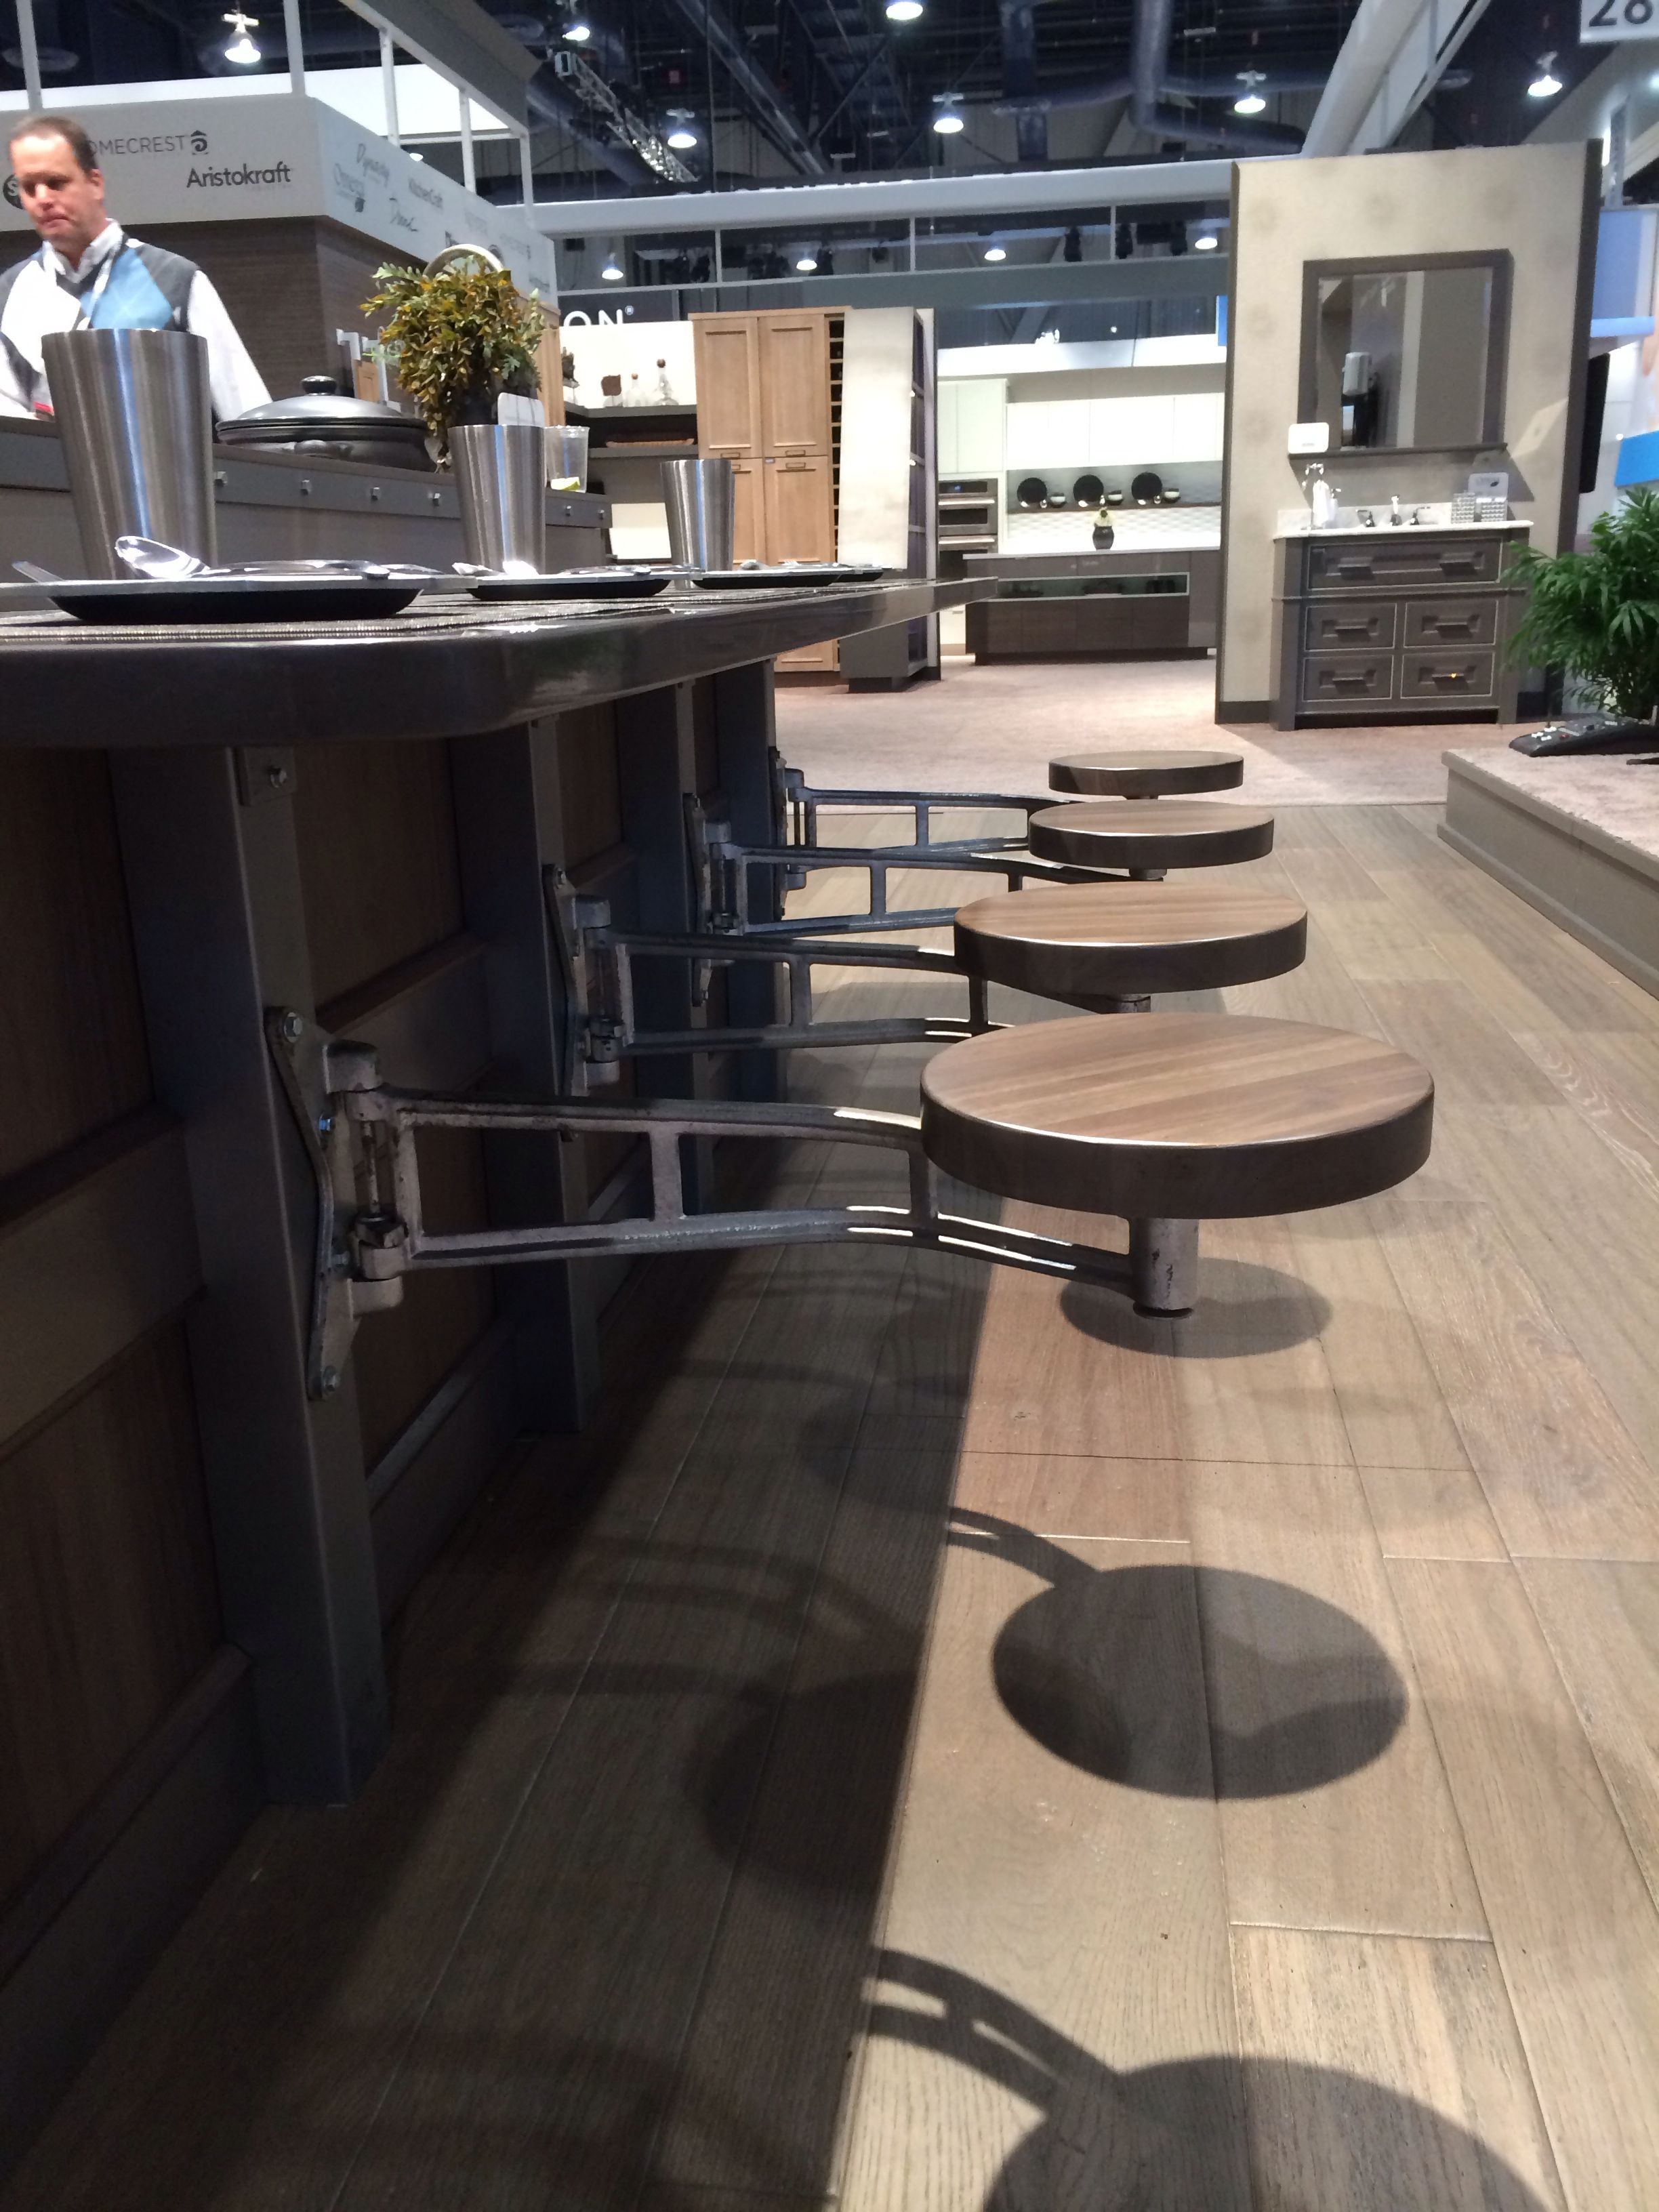 Add Your Kitchen With Kitchen Island With Stools: Swing-out Stools Are Functional And A Soace Saver For The